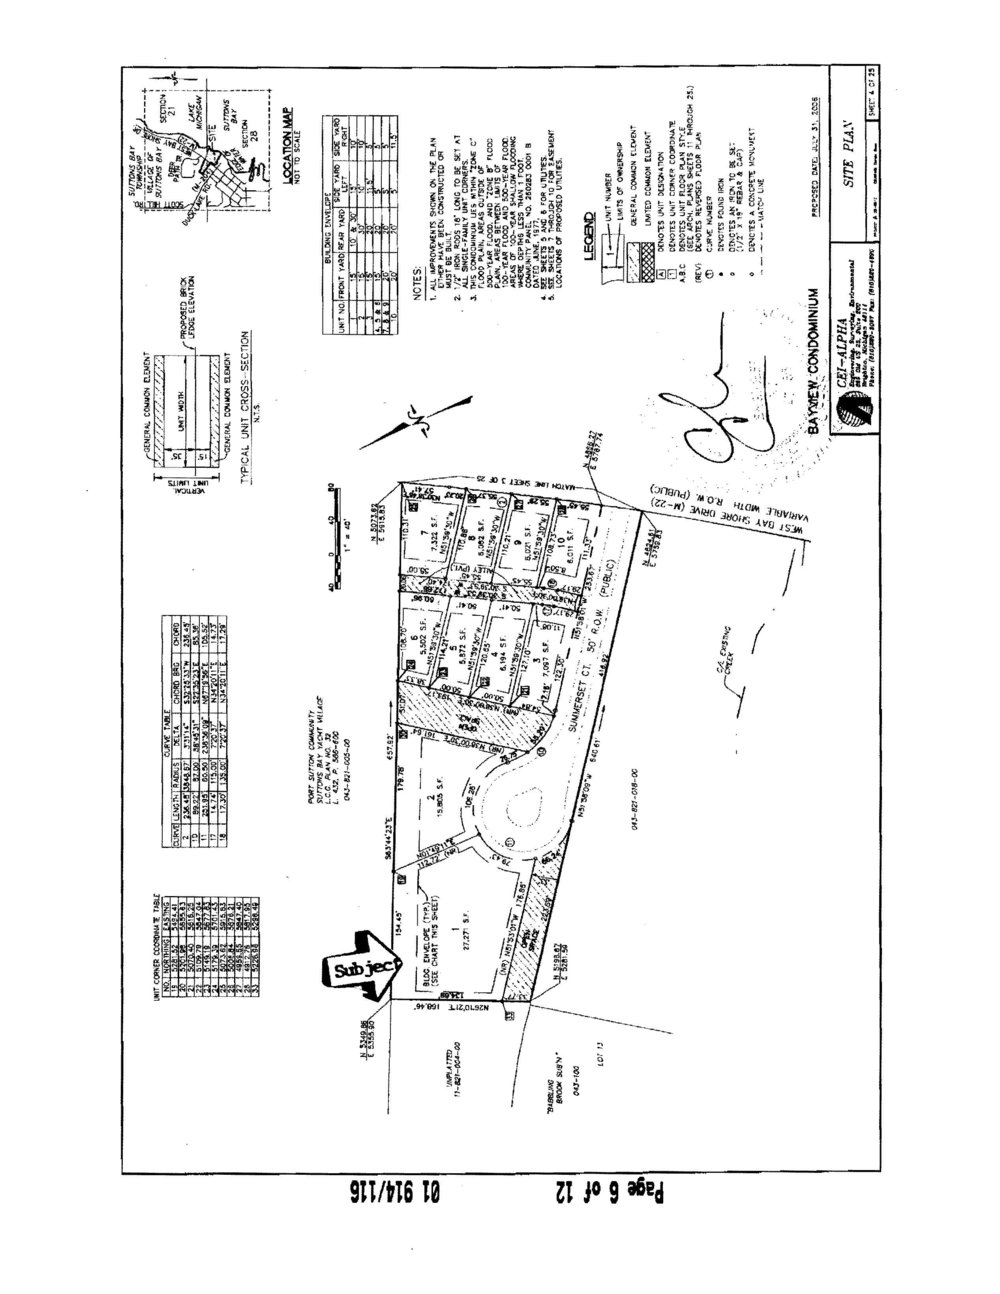 254 W Summerset Court, Village of Suttons Bay vacant lot for sale by Oltersdorf Realty, Suttons Bay Realtors - Marketing Packet (6).jpg